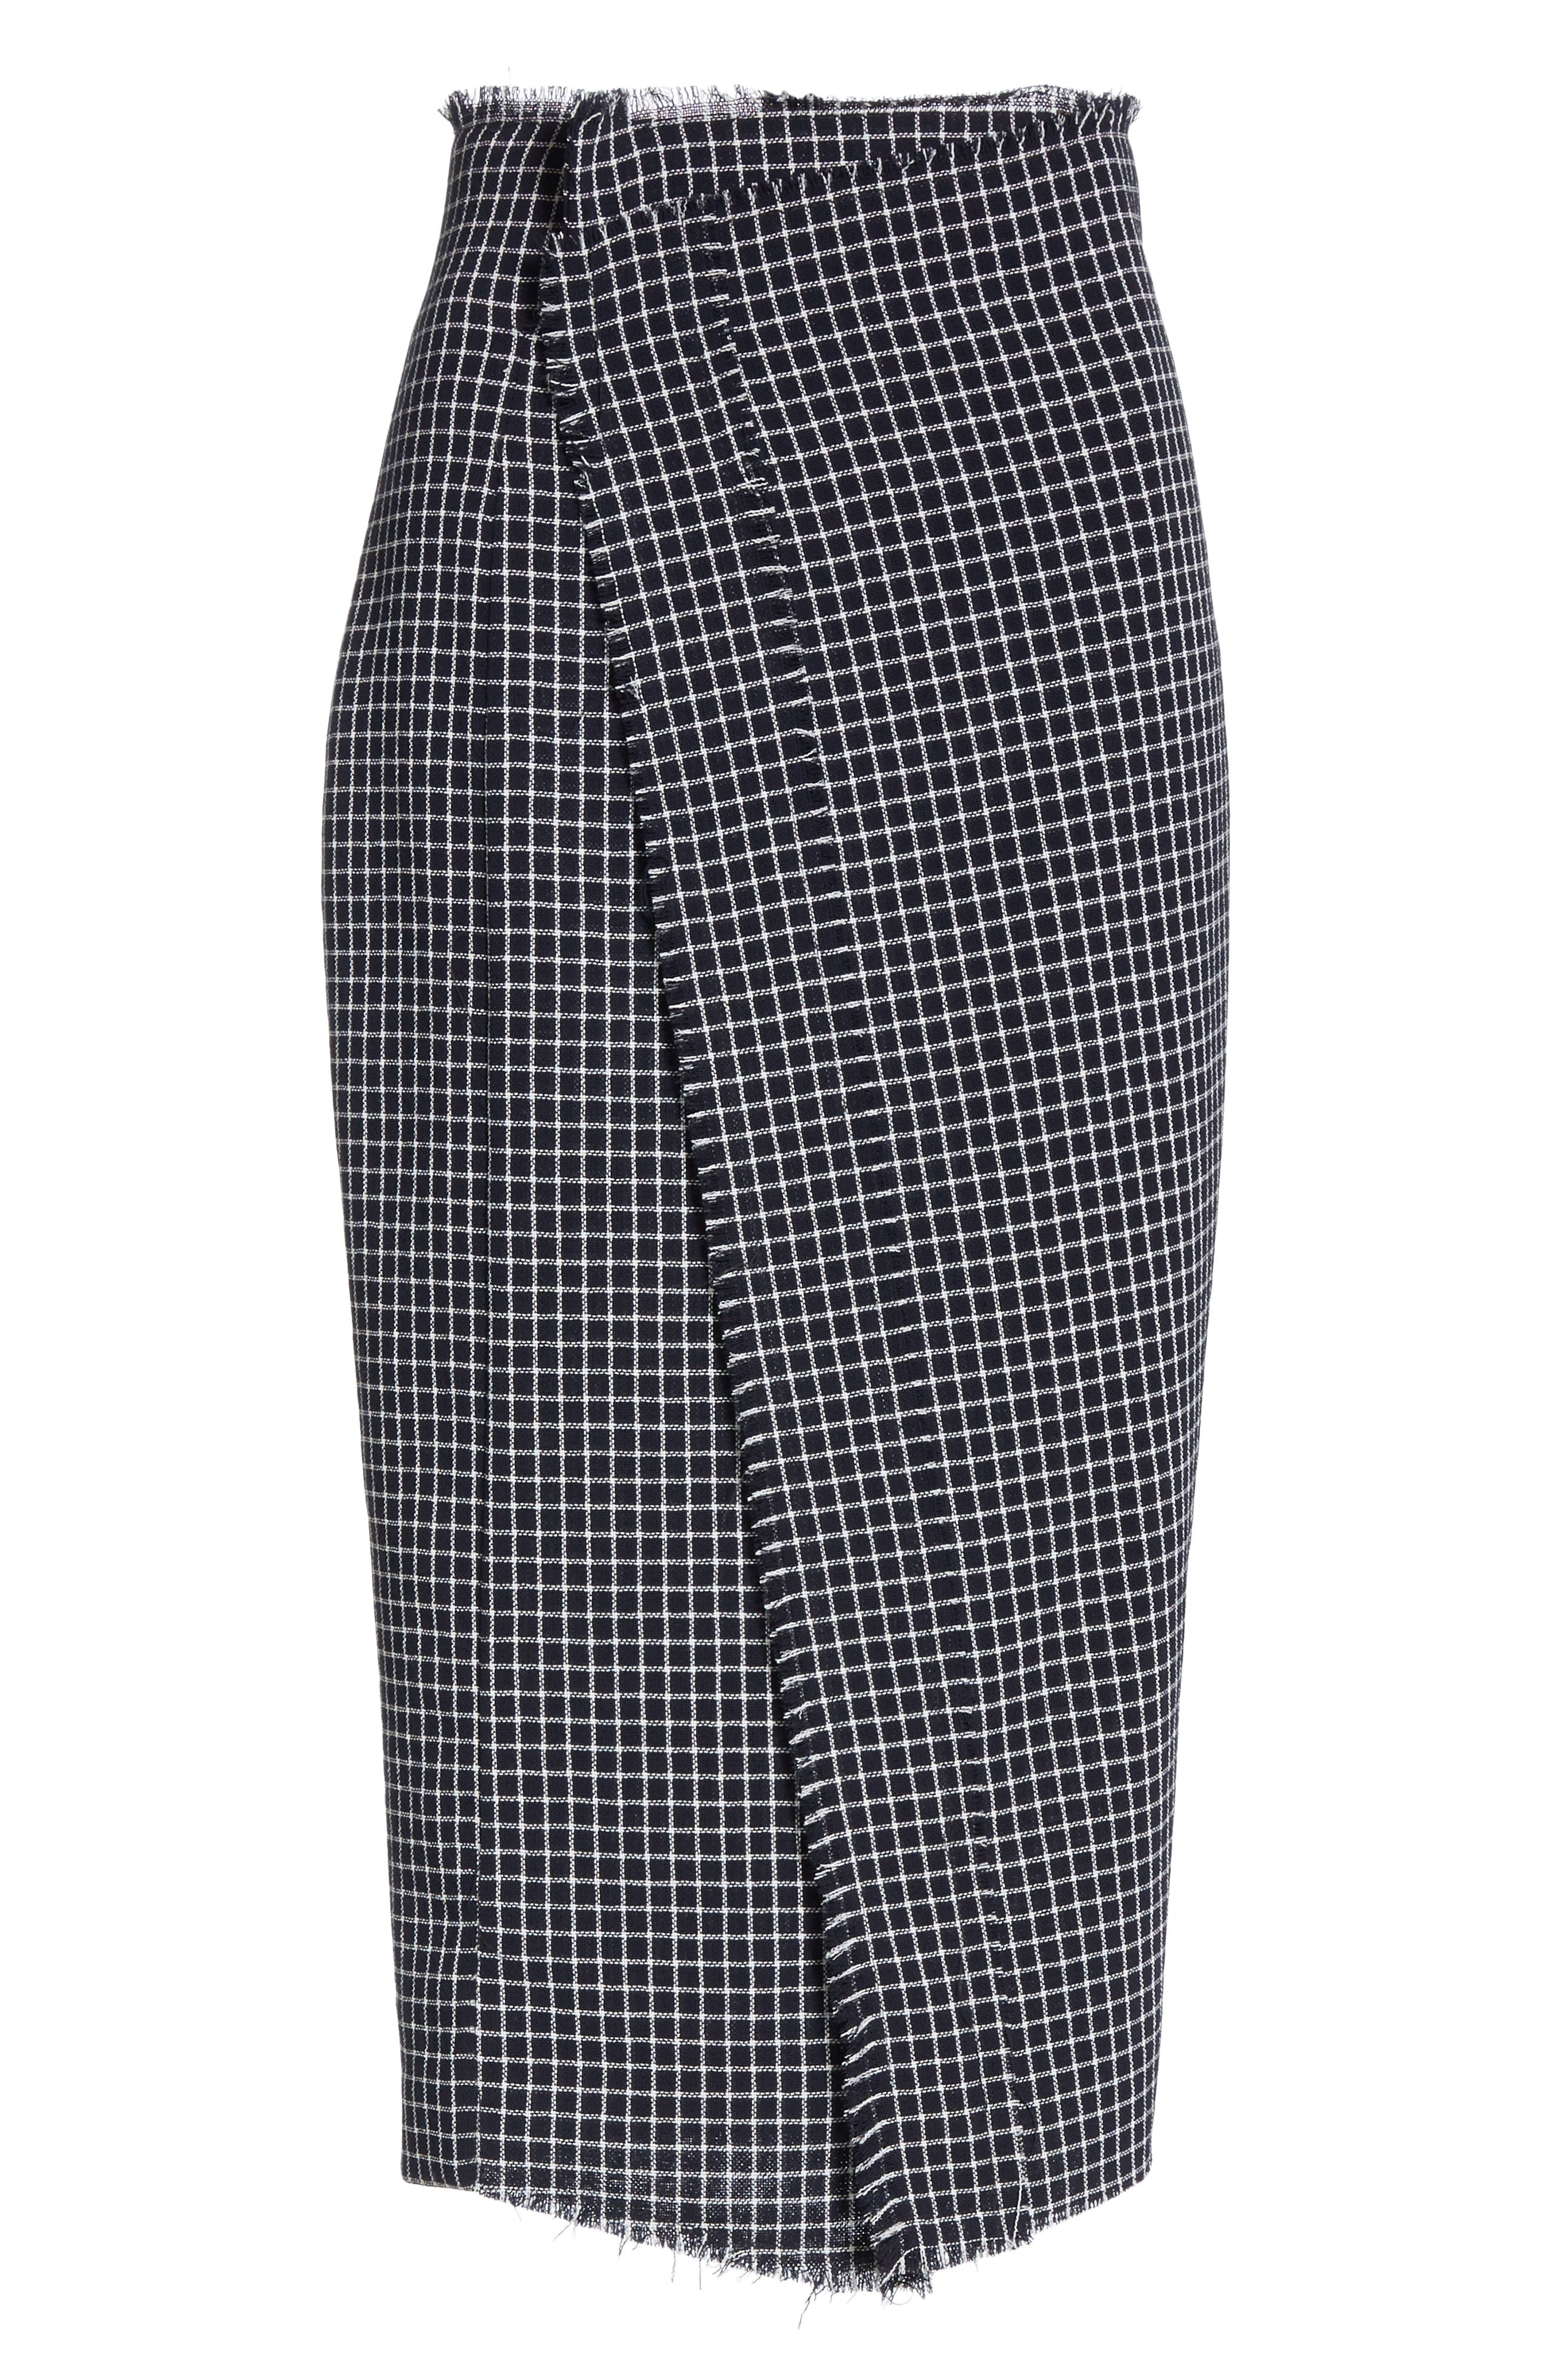 JASON WU COLLECTION,                             Wool Check Skirt,                             Alternate thumbnail 6, color,                             001